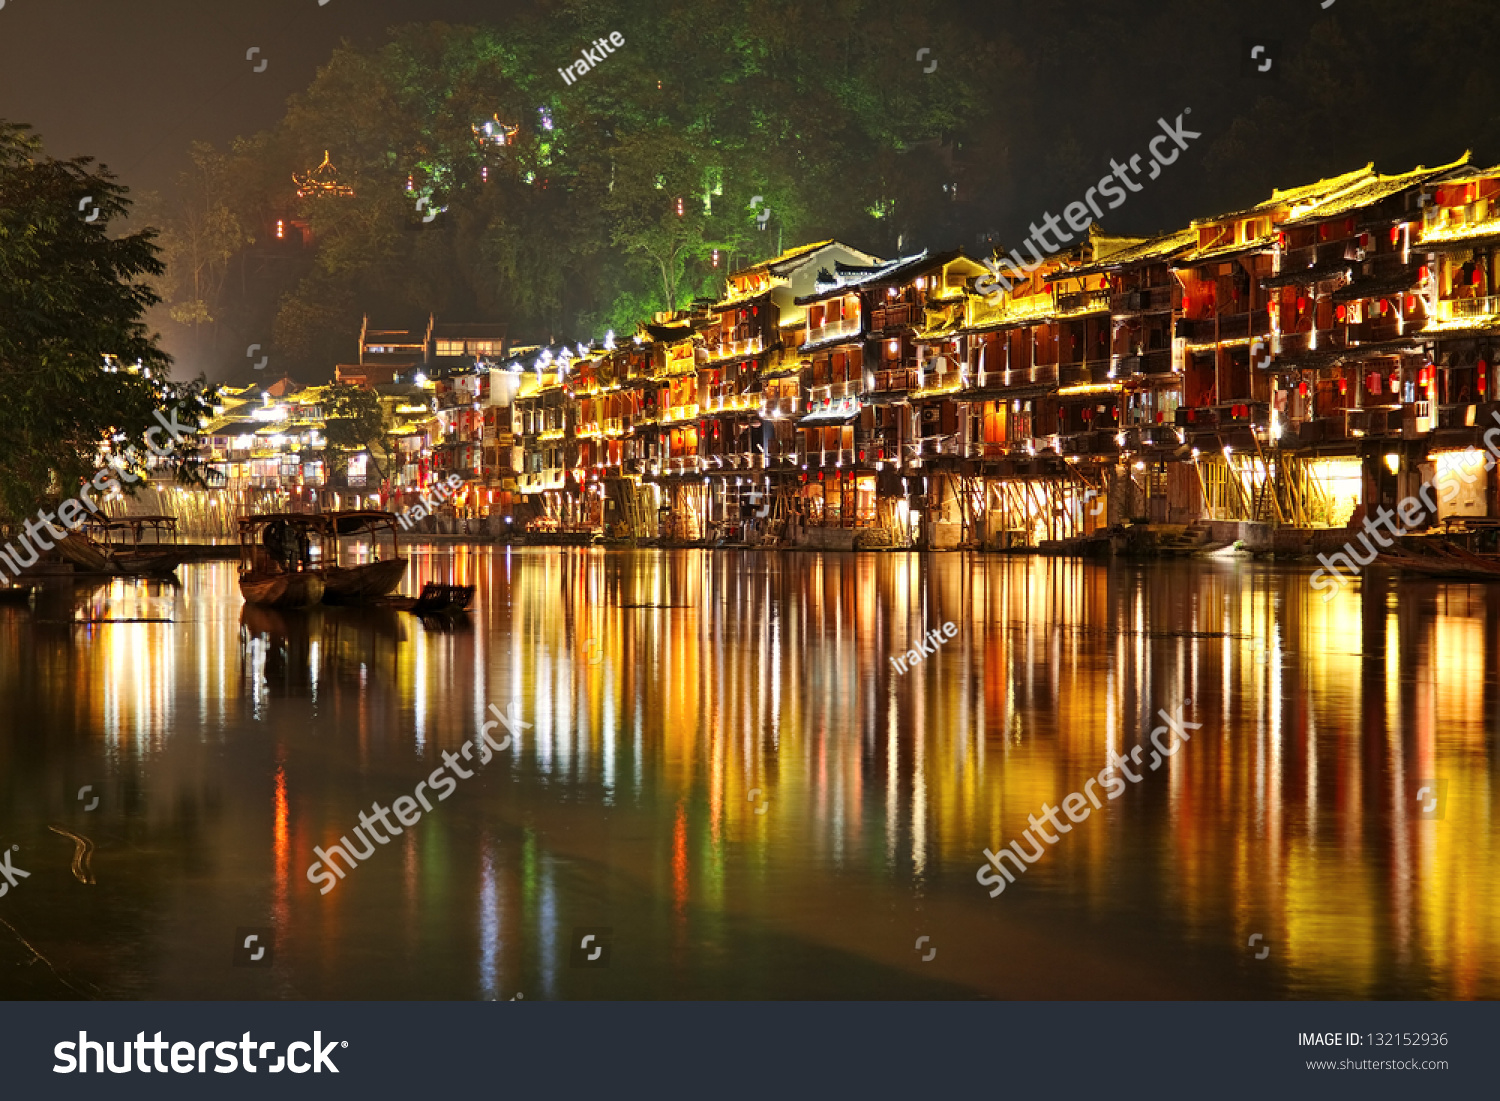 Fenghuang (Phoenix) China  city photos gallery : Fenghuang Phoenix Ancient Town At Night, Hunan Province, China Stock ...